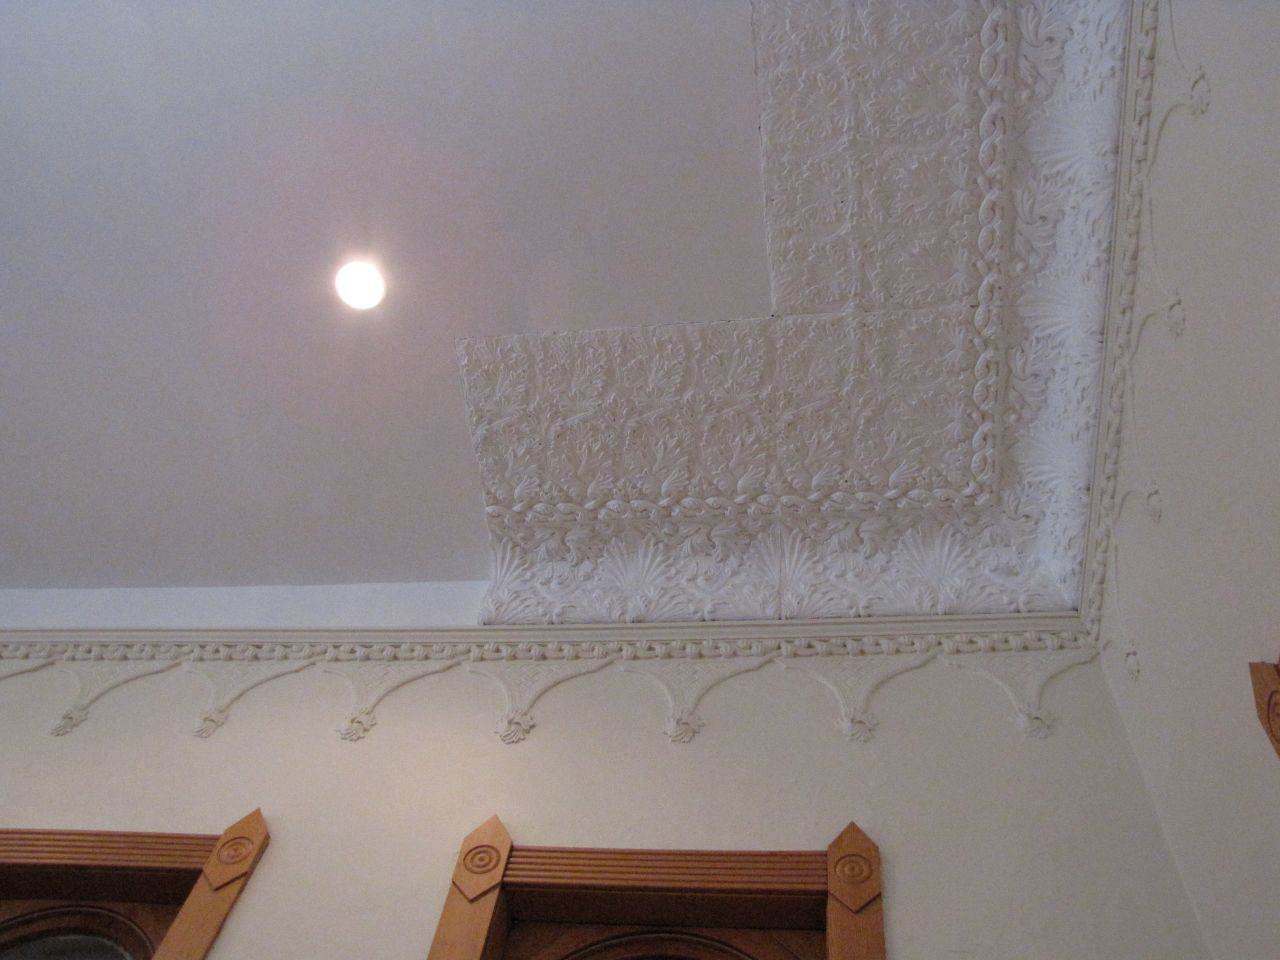 The roof was restored but sections that fell in have proved difficult to replicate.